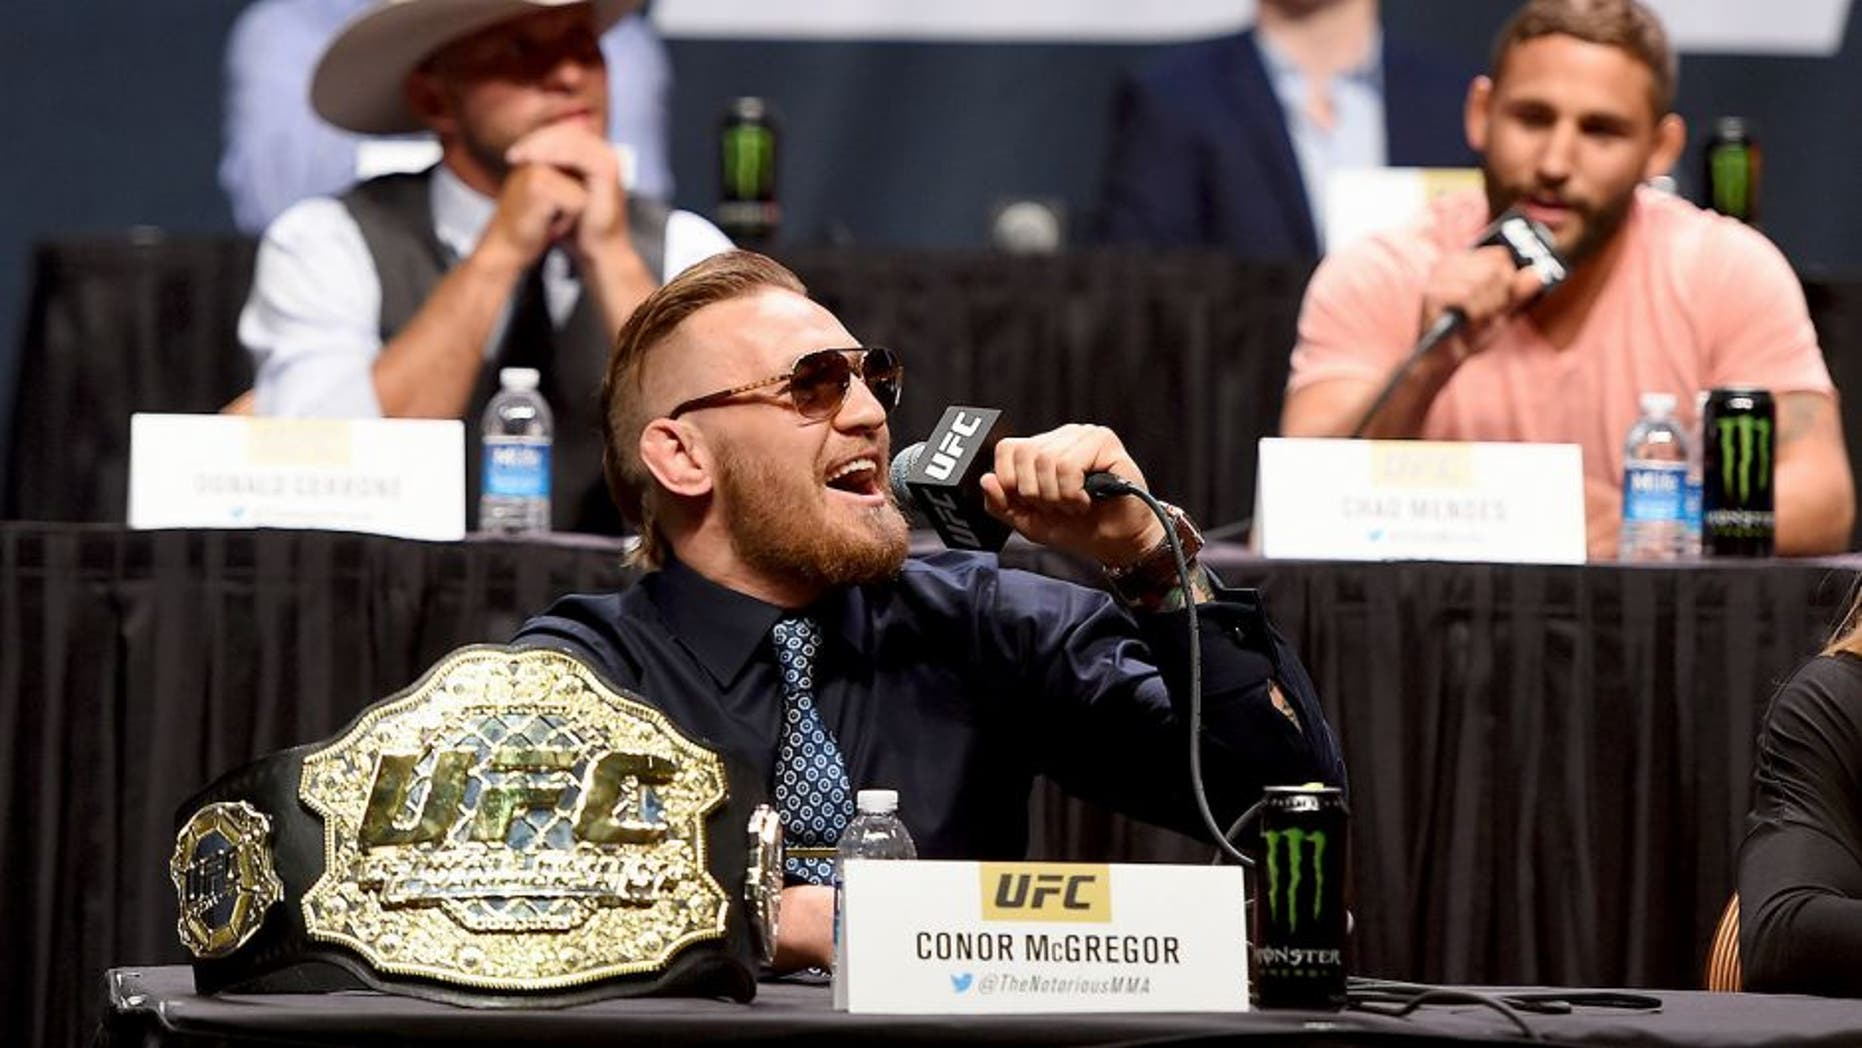 LAS VEGAS, NV - SEPTEMBER 04: UFC featherweight interim champion Conor McGregor speaks to the media and fans during the UFC's Go Big launch event inside MGM Grand Garden Arena on September 4, 2015 in Las Vegas, Nevada. (Photo by Josh Hedges/Zuffa LLC/Zuffa LLC via Getty Images)